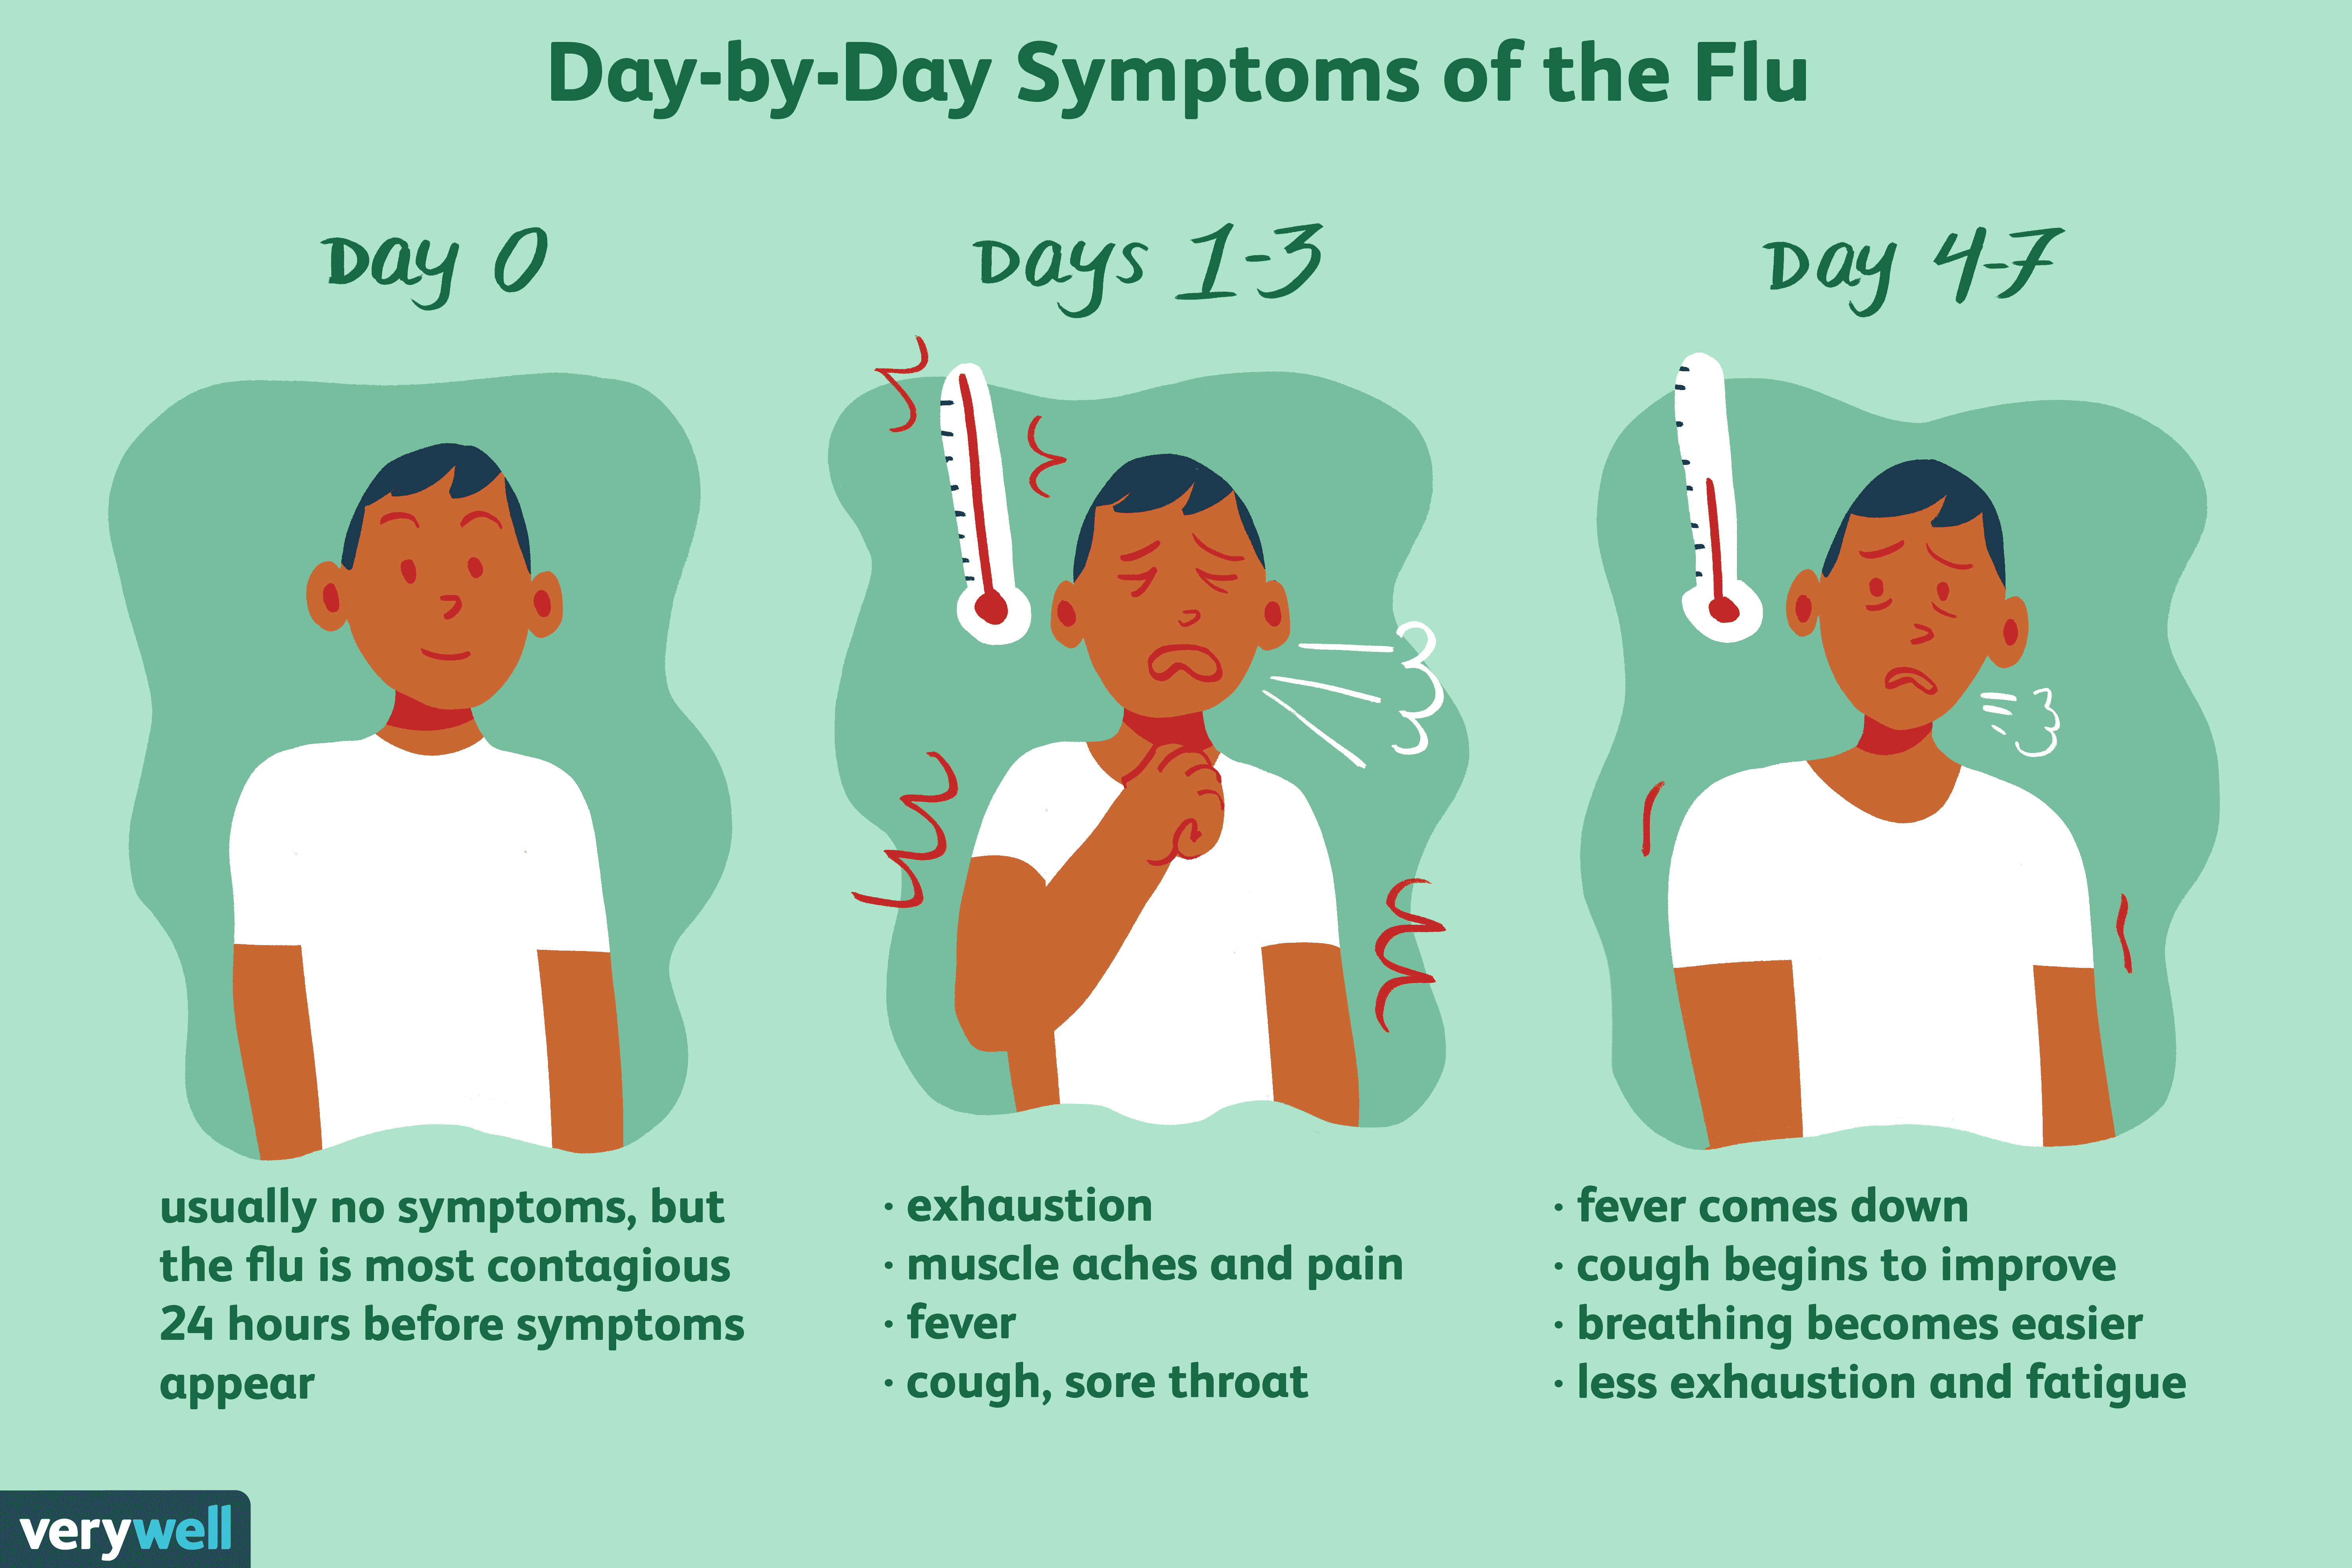 examing how the flu progresses day after day